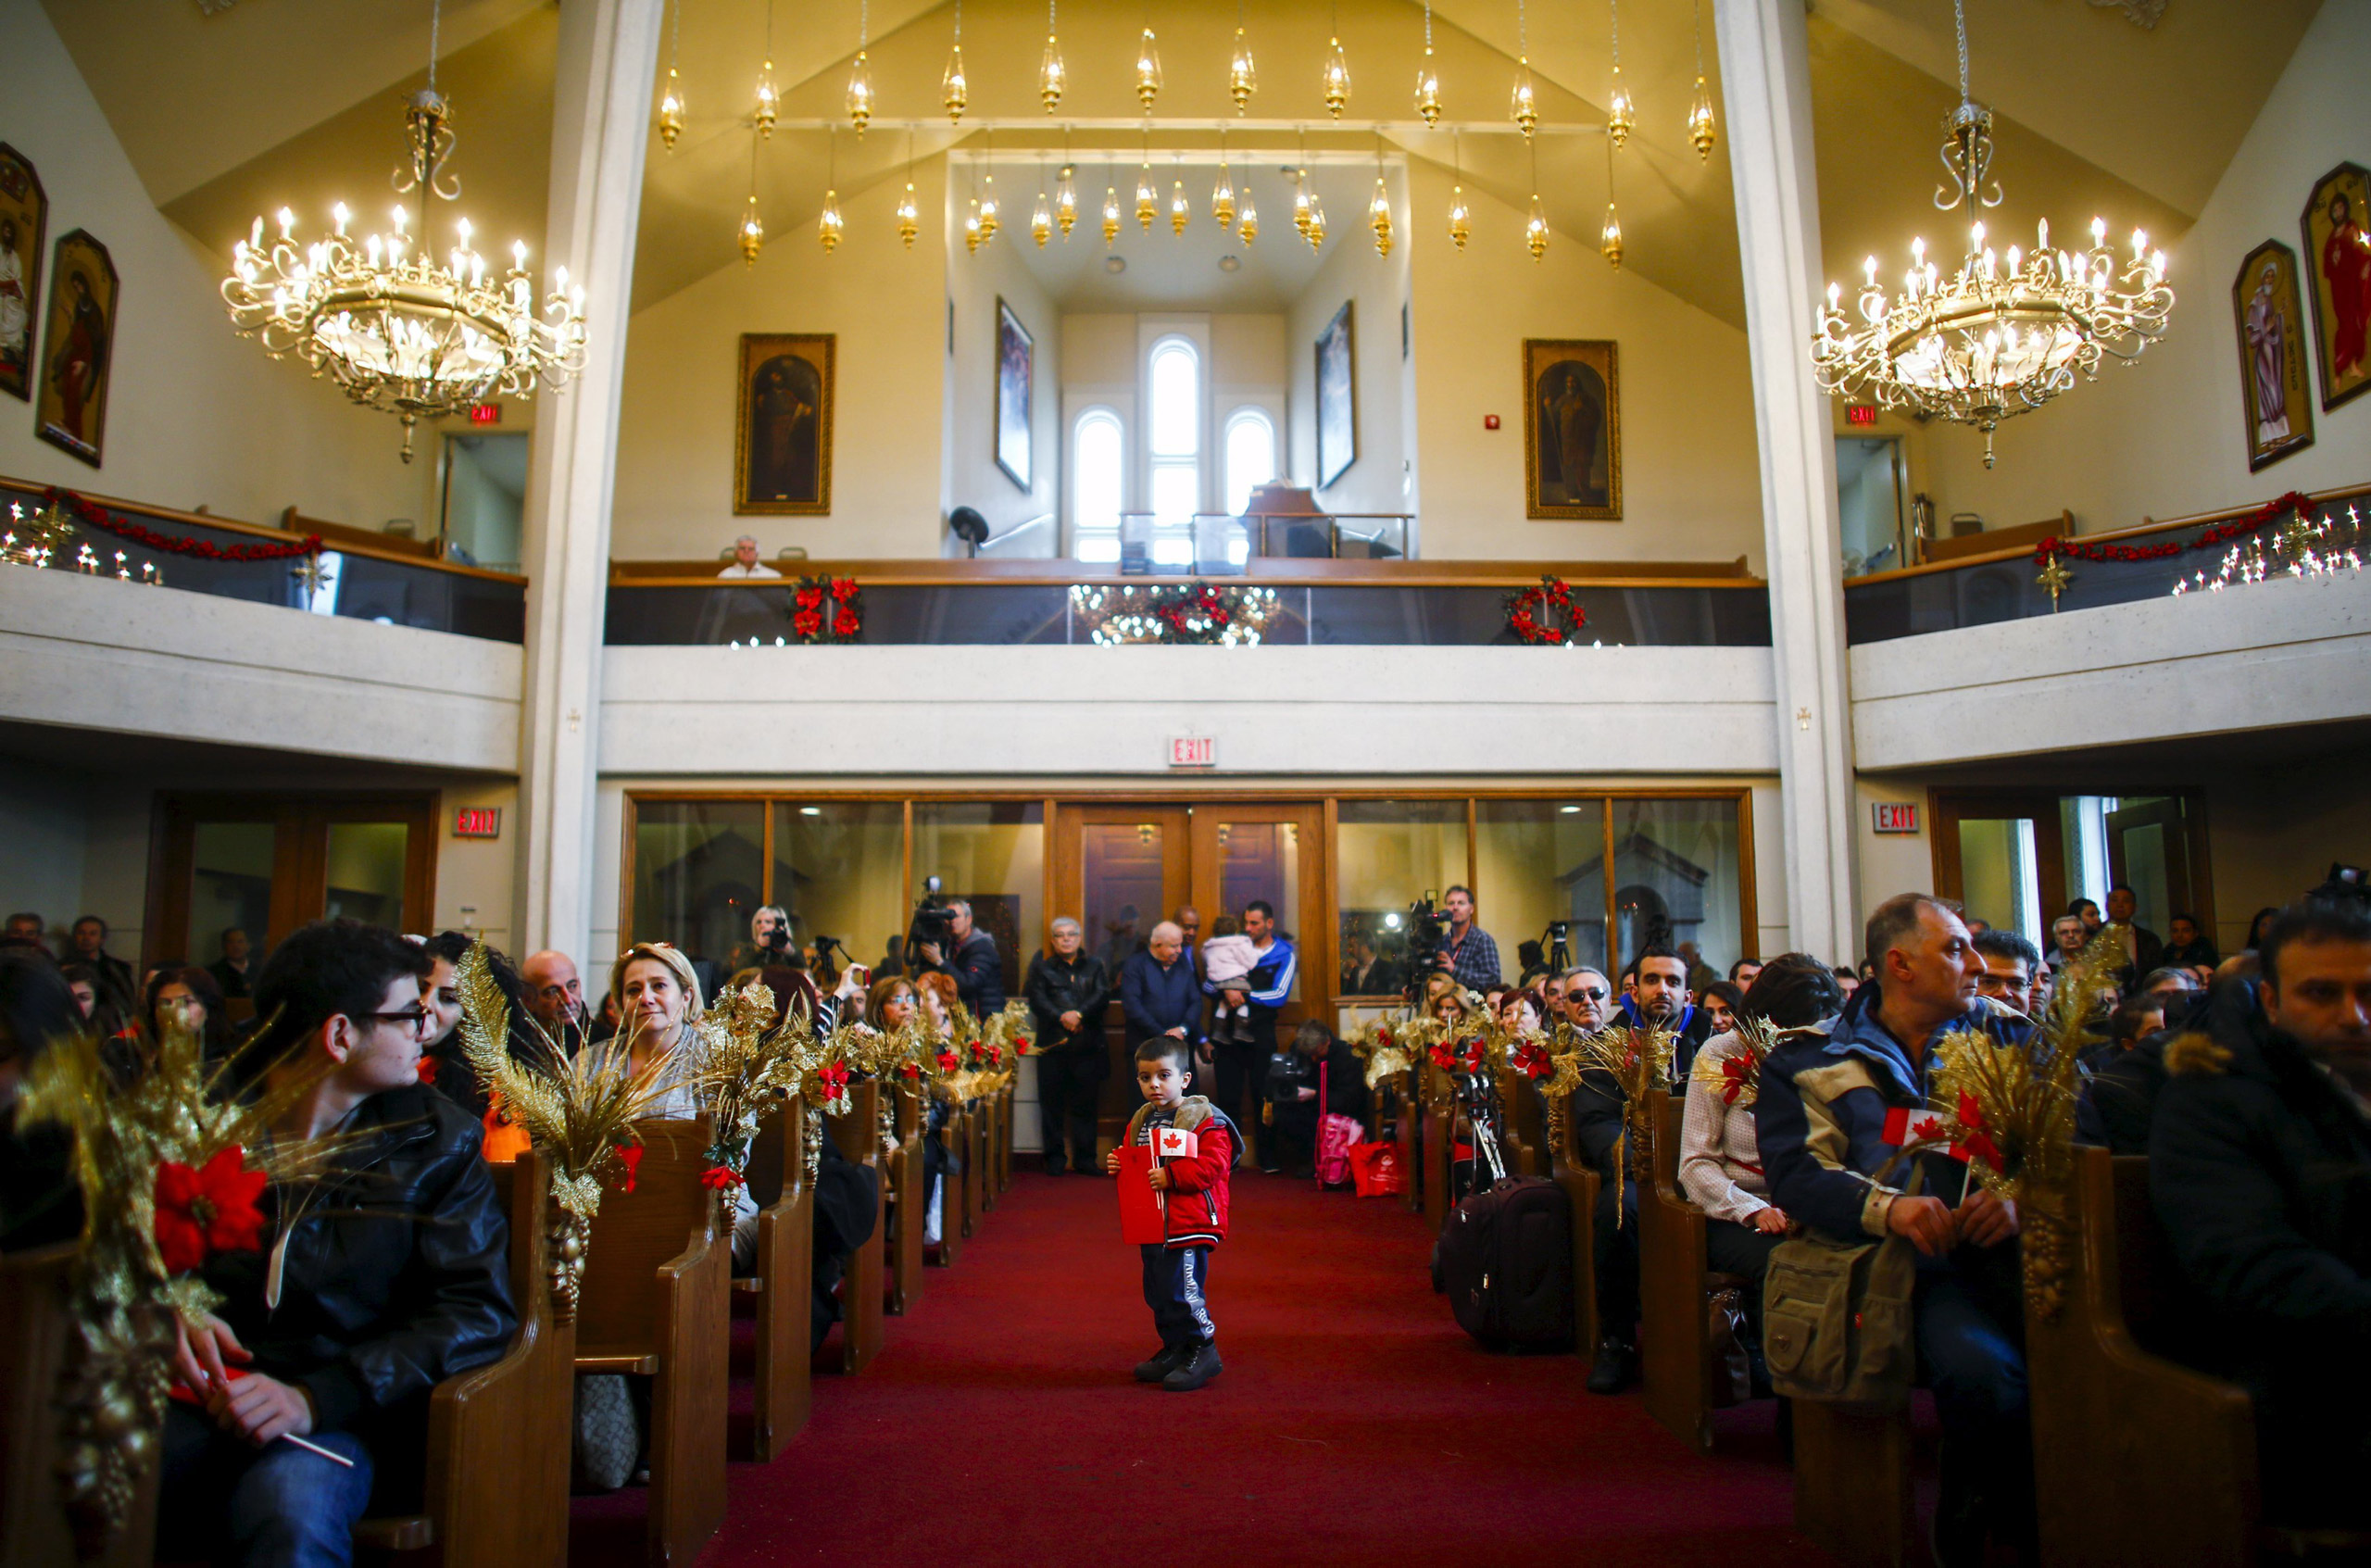 Syrian refugee Levon Kourken, 4, stands on an aisle during a welcoming service for Syrian refugees at St. Mary Armenian Apostolic Church in Toronto on Dec. 11, 2015.